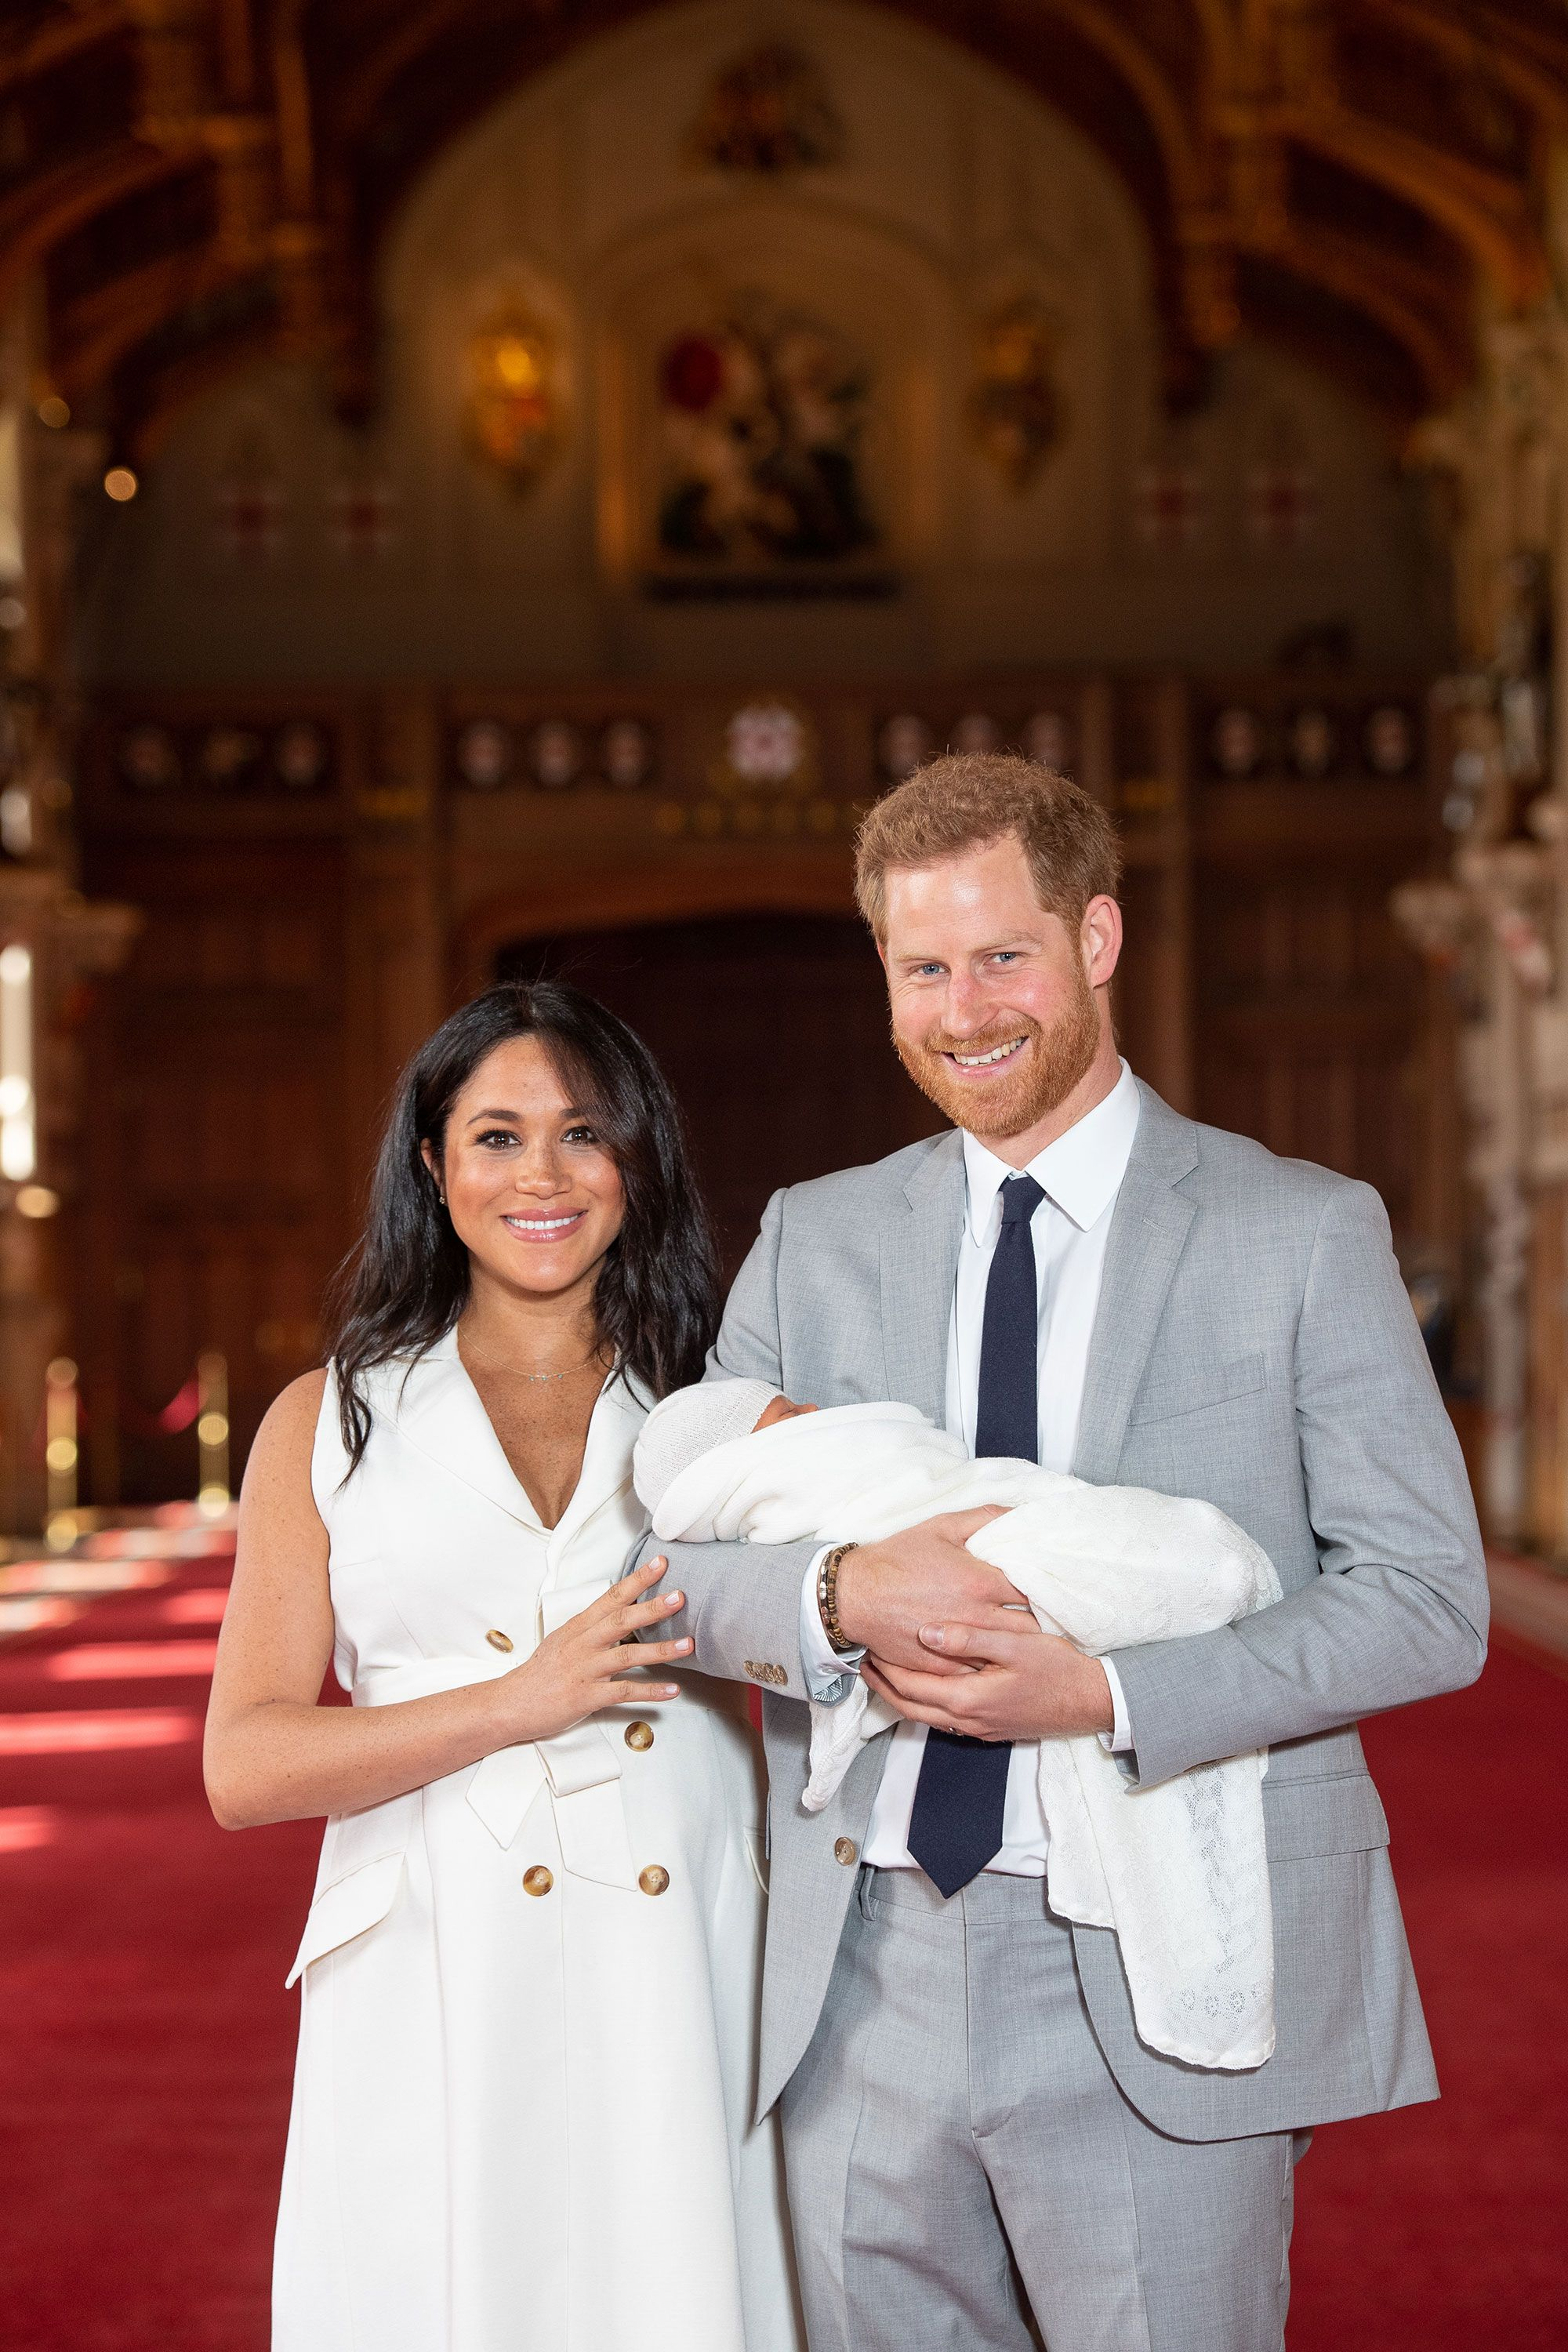 Prince Harry just said the sweetest thing about his son Archie